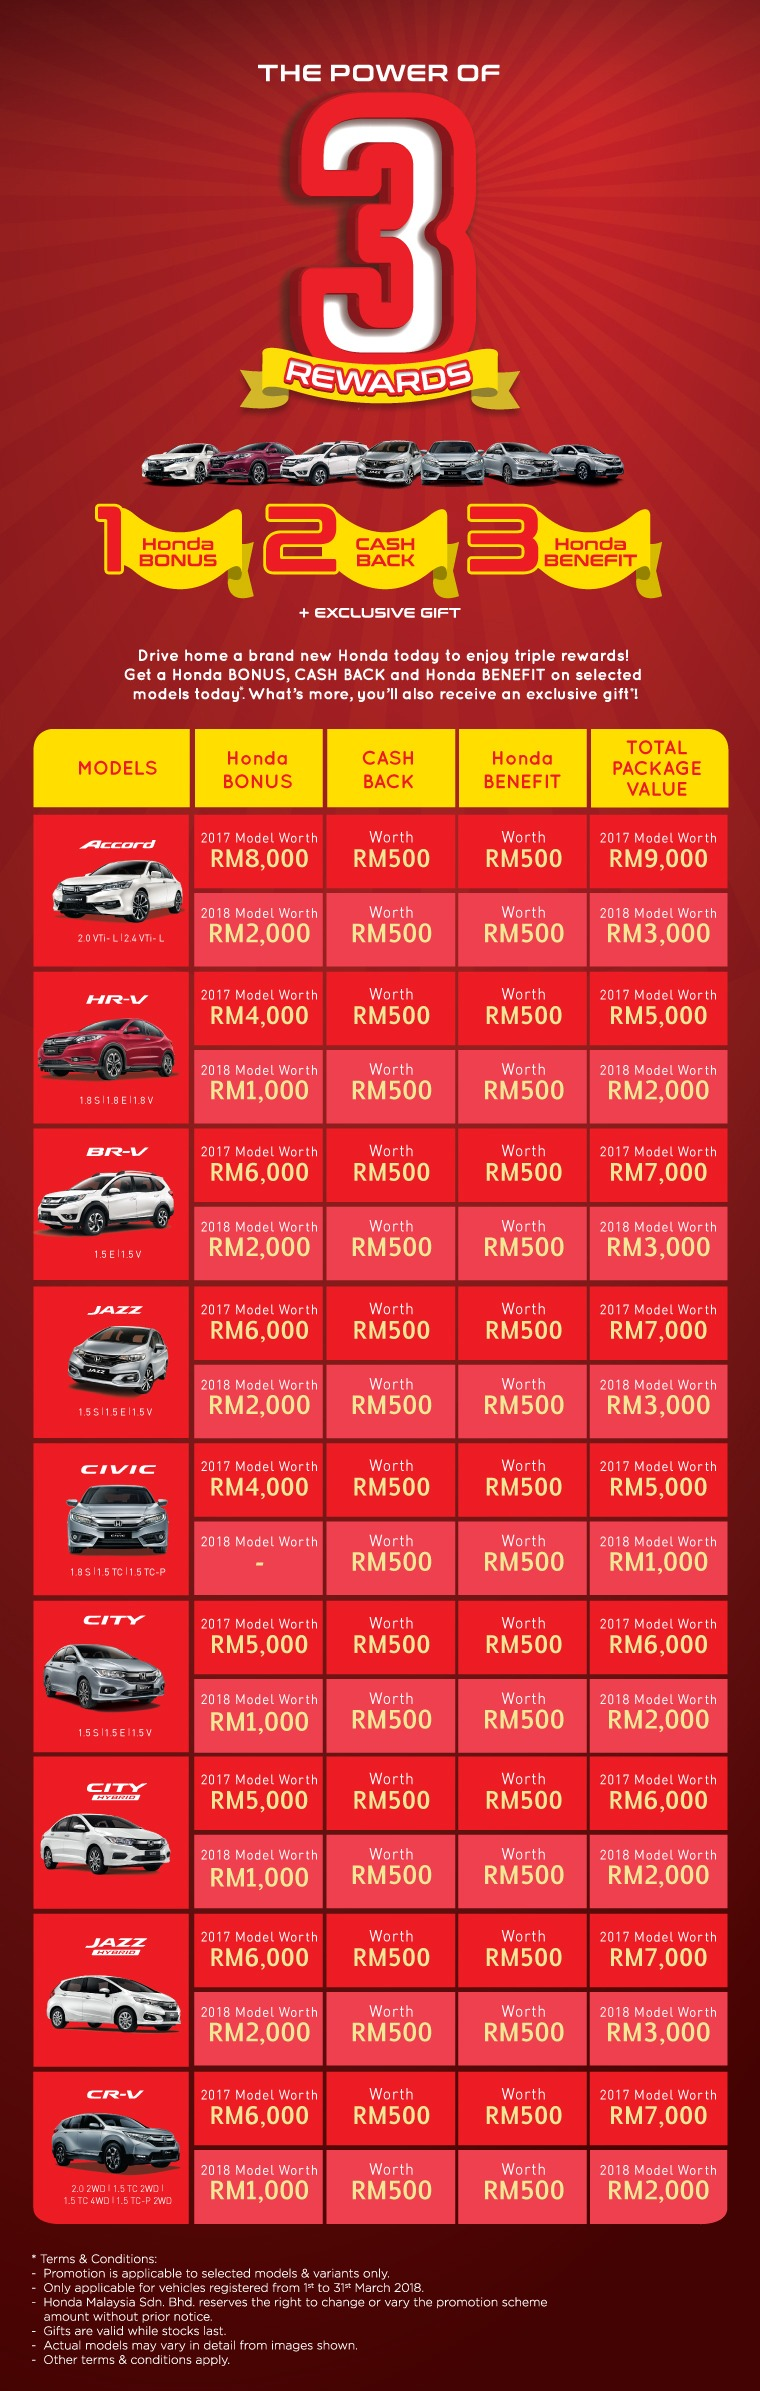 Honda the power of 3 rewards